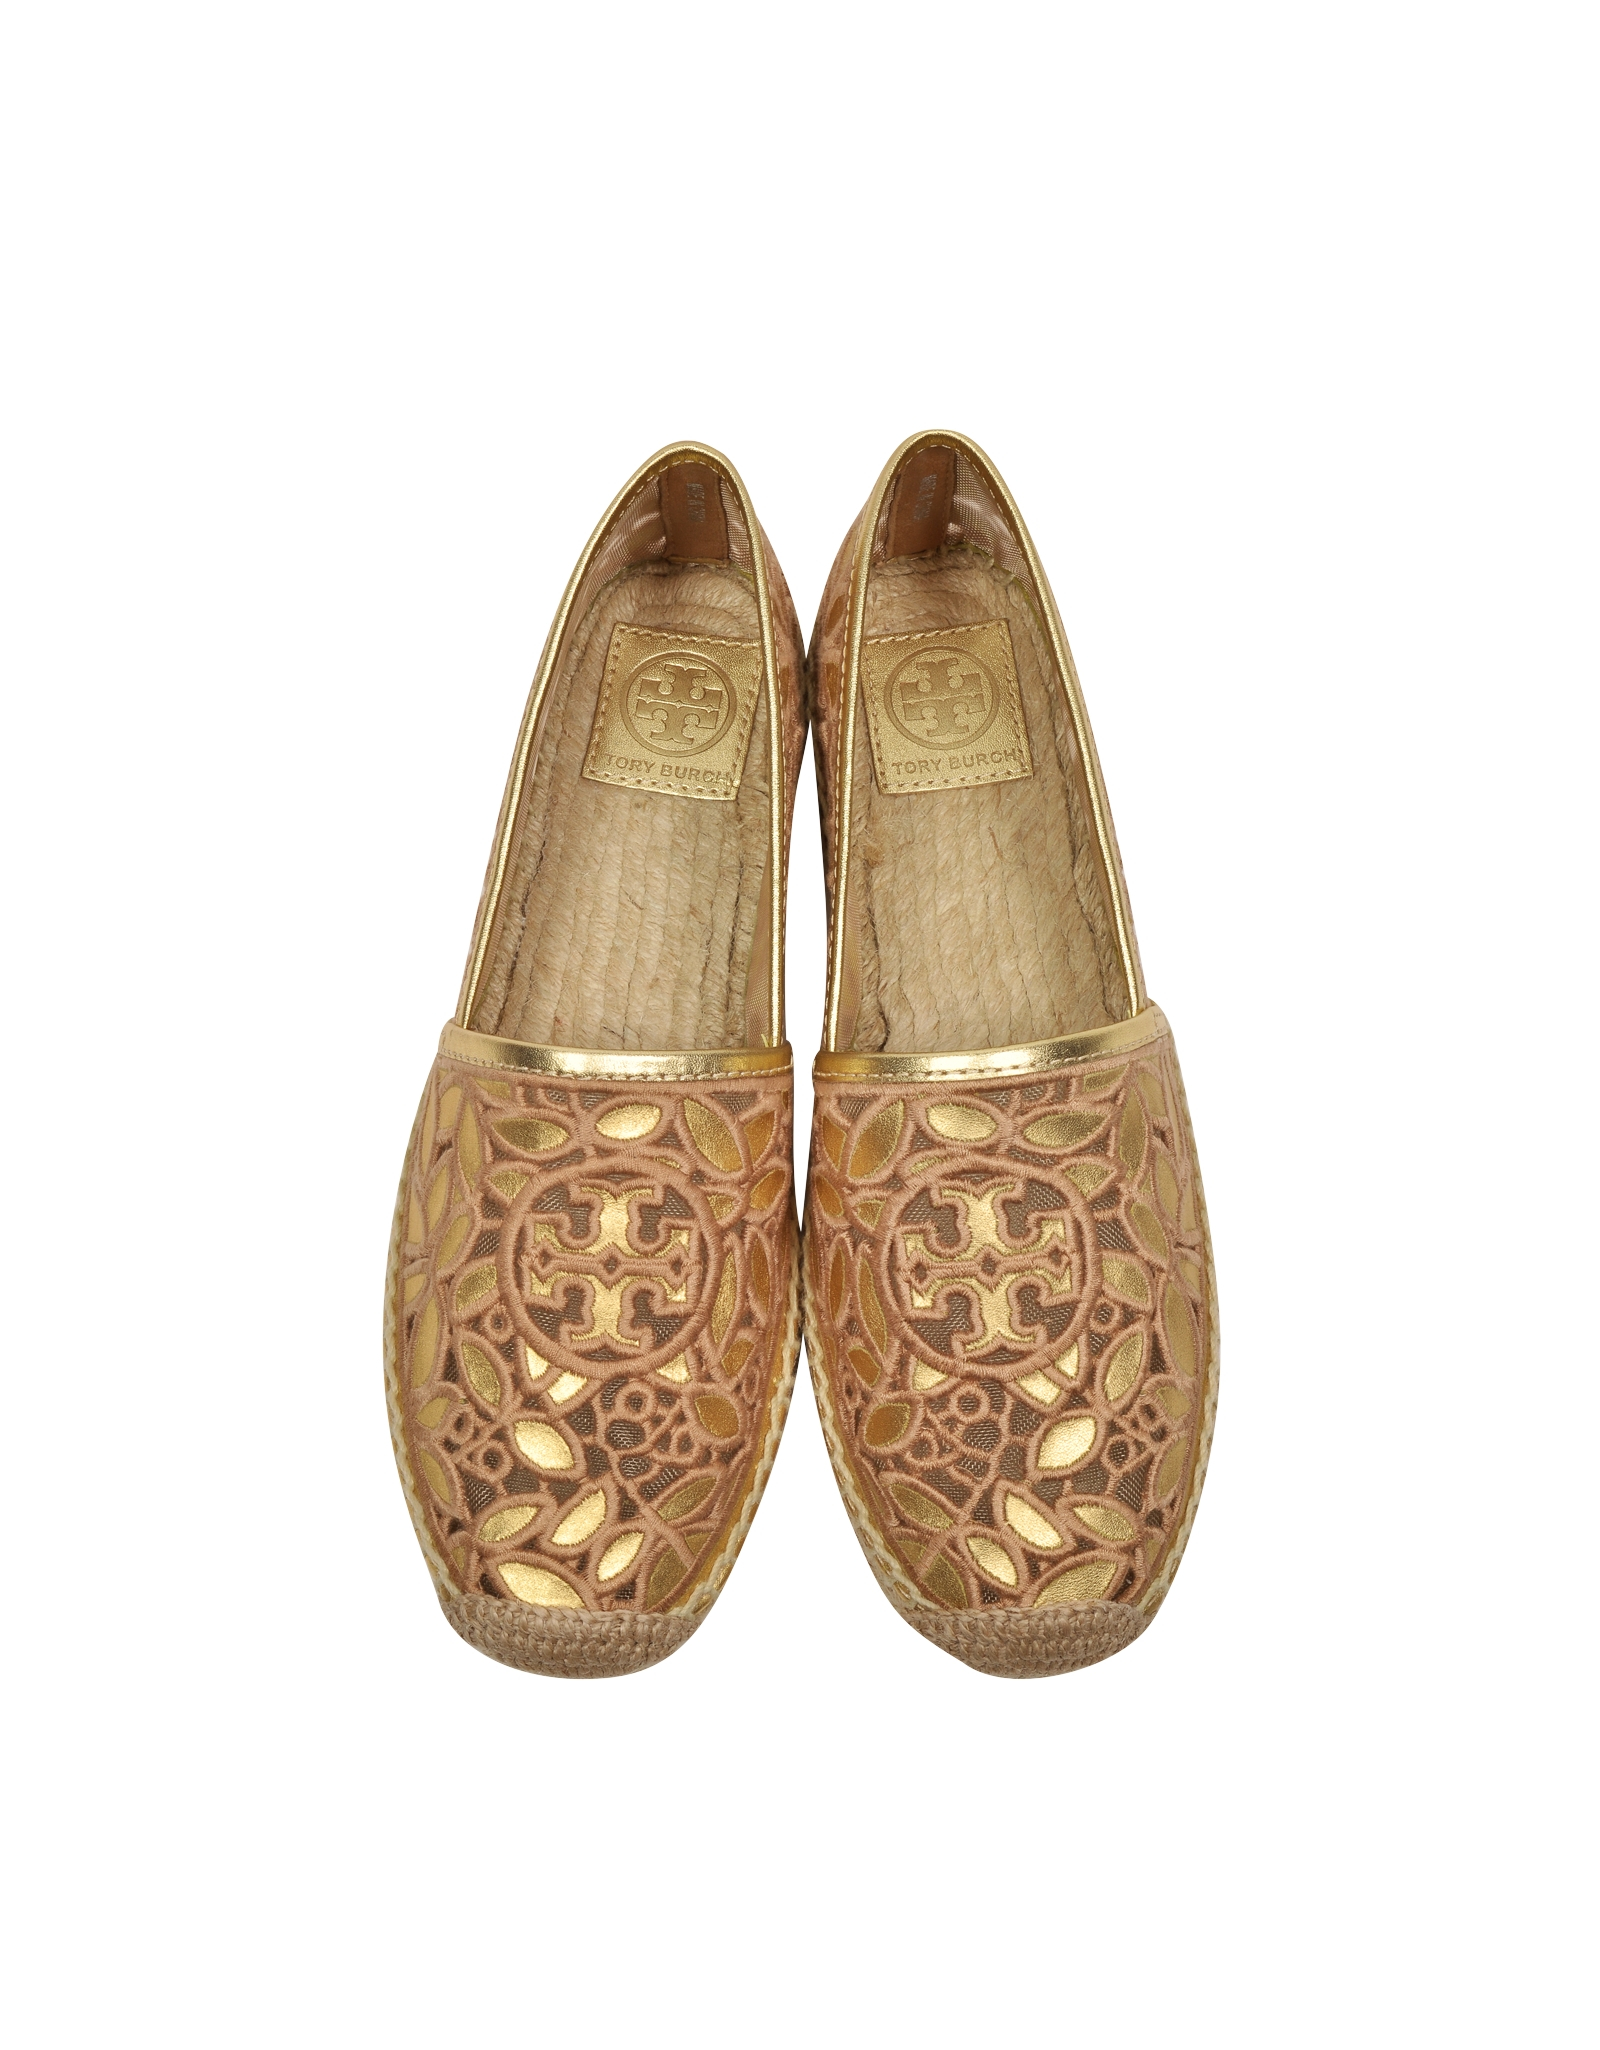 a117aa883d2a Lyst - Tory Burch Rhea Gold Metallic Leather Embroidered Espadrille ...